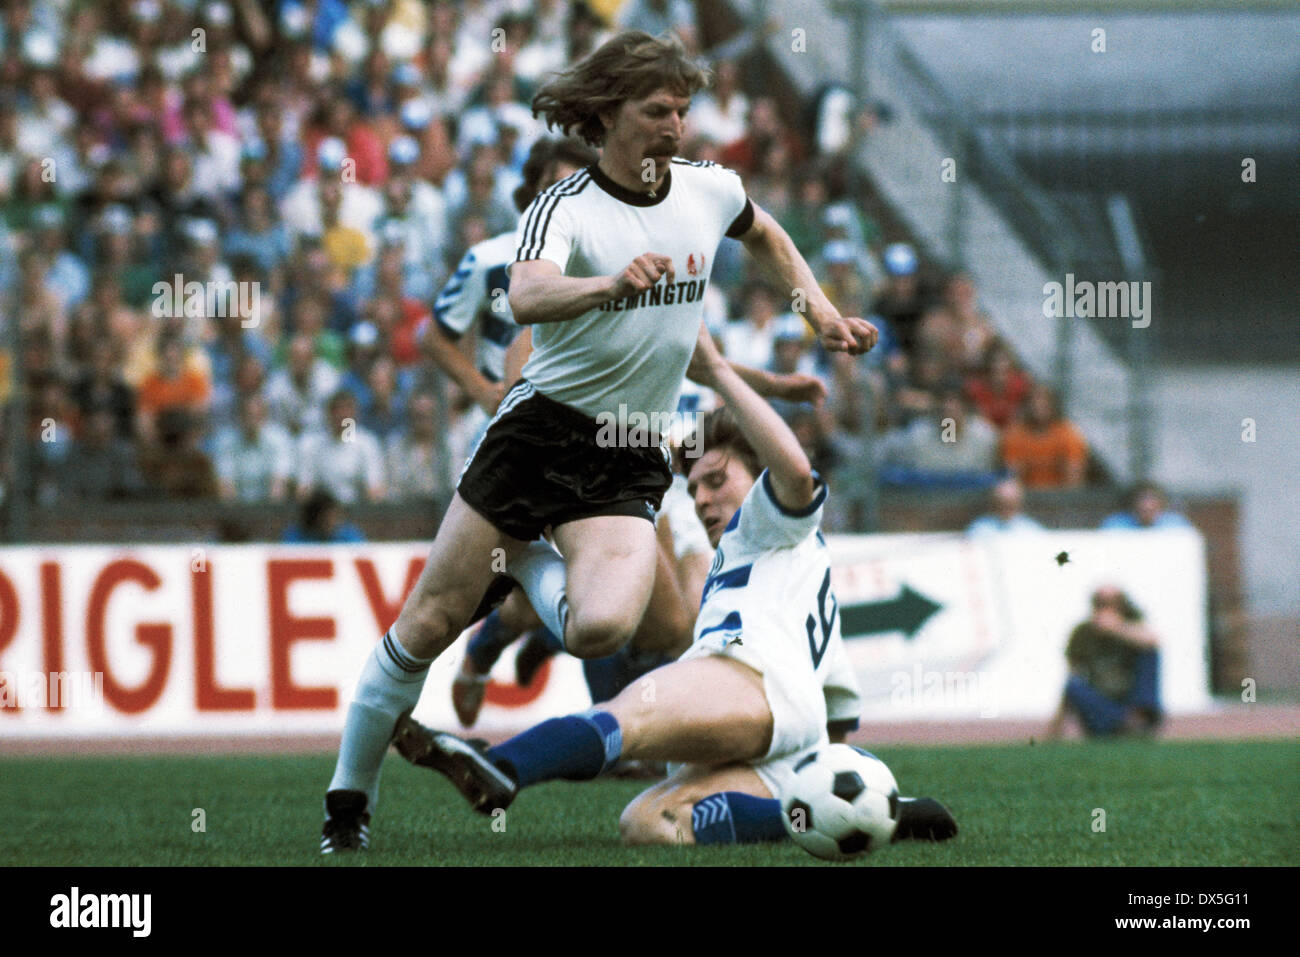 football, DFB Cup, 1974/1975, final, Niedersachsen Stadium in Hanover, Eintracht Frankfurt versus MSV Duisburg 1:0, scene of the match, Juergen Grabowski (Eintracht) at the ball and Ronald Worm (MSV) - Stock Image